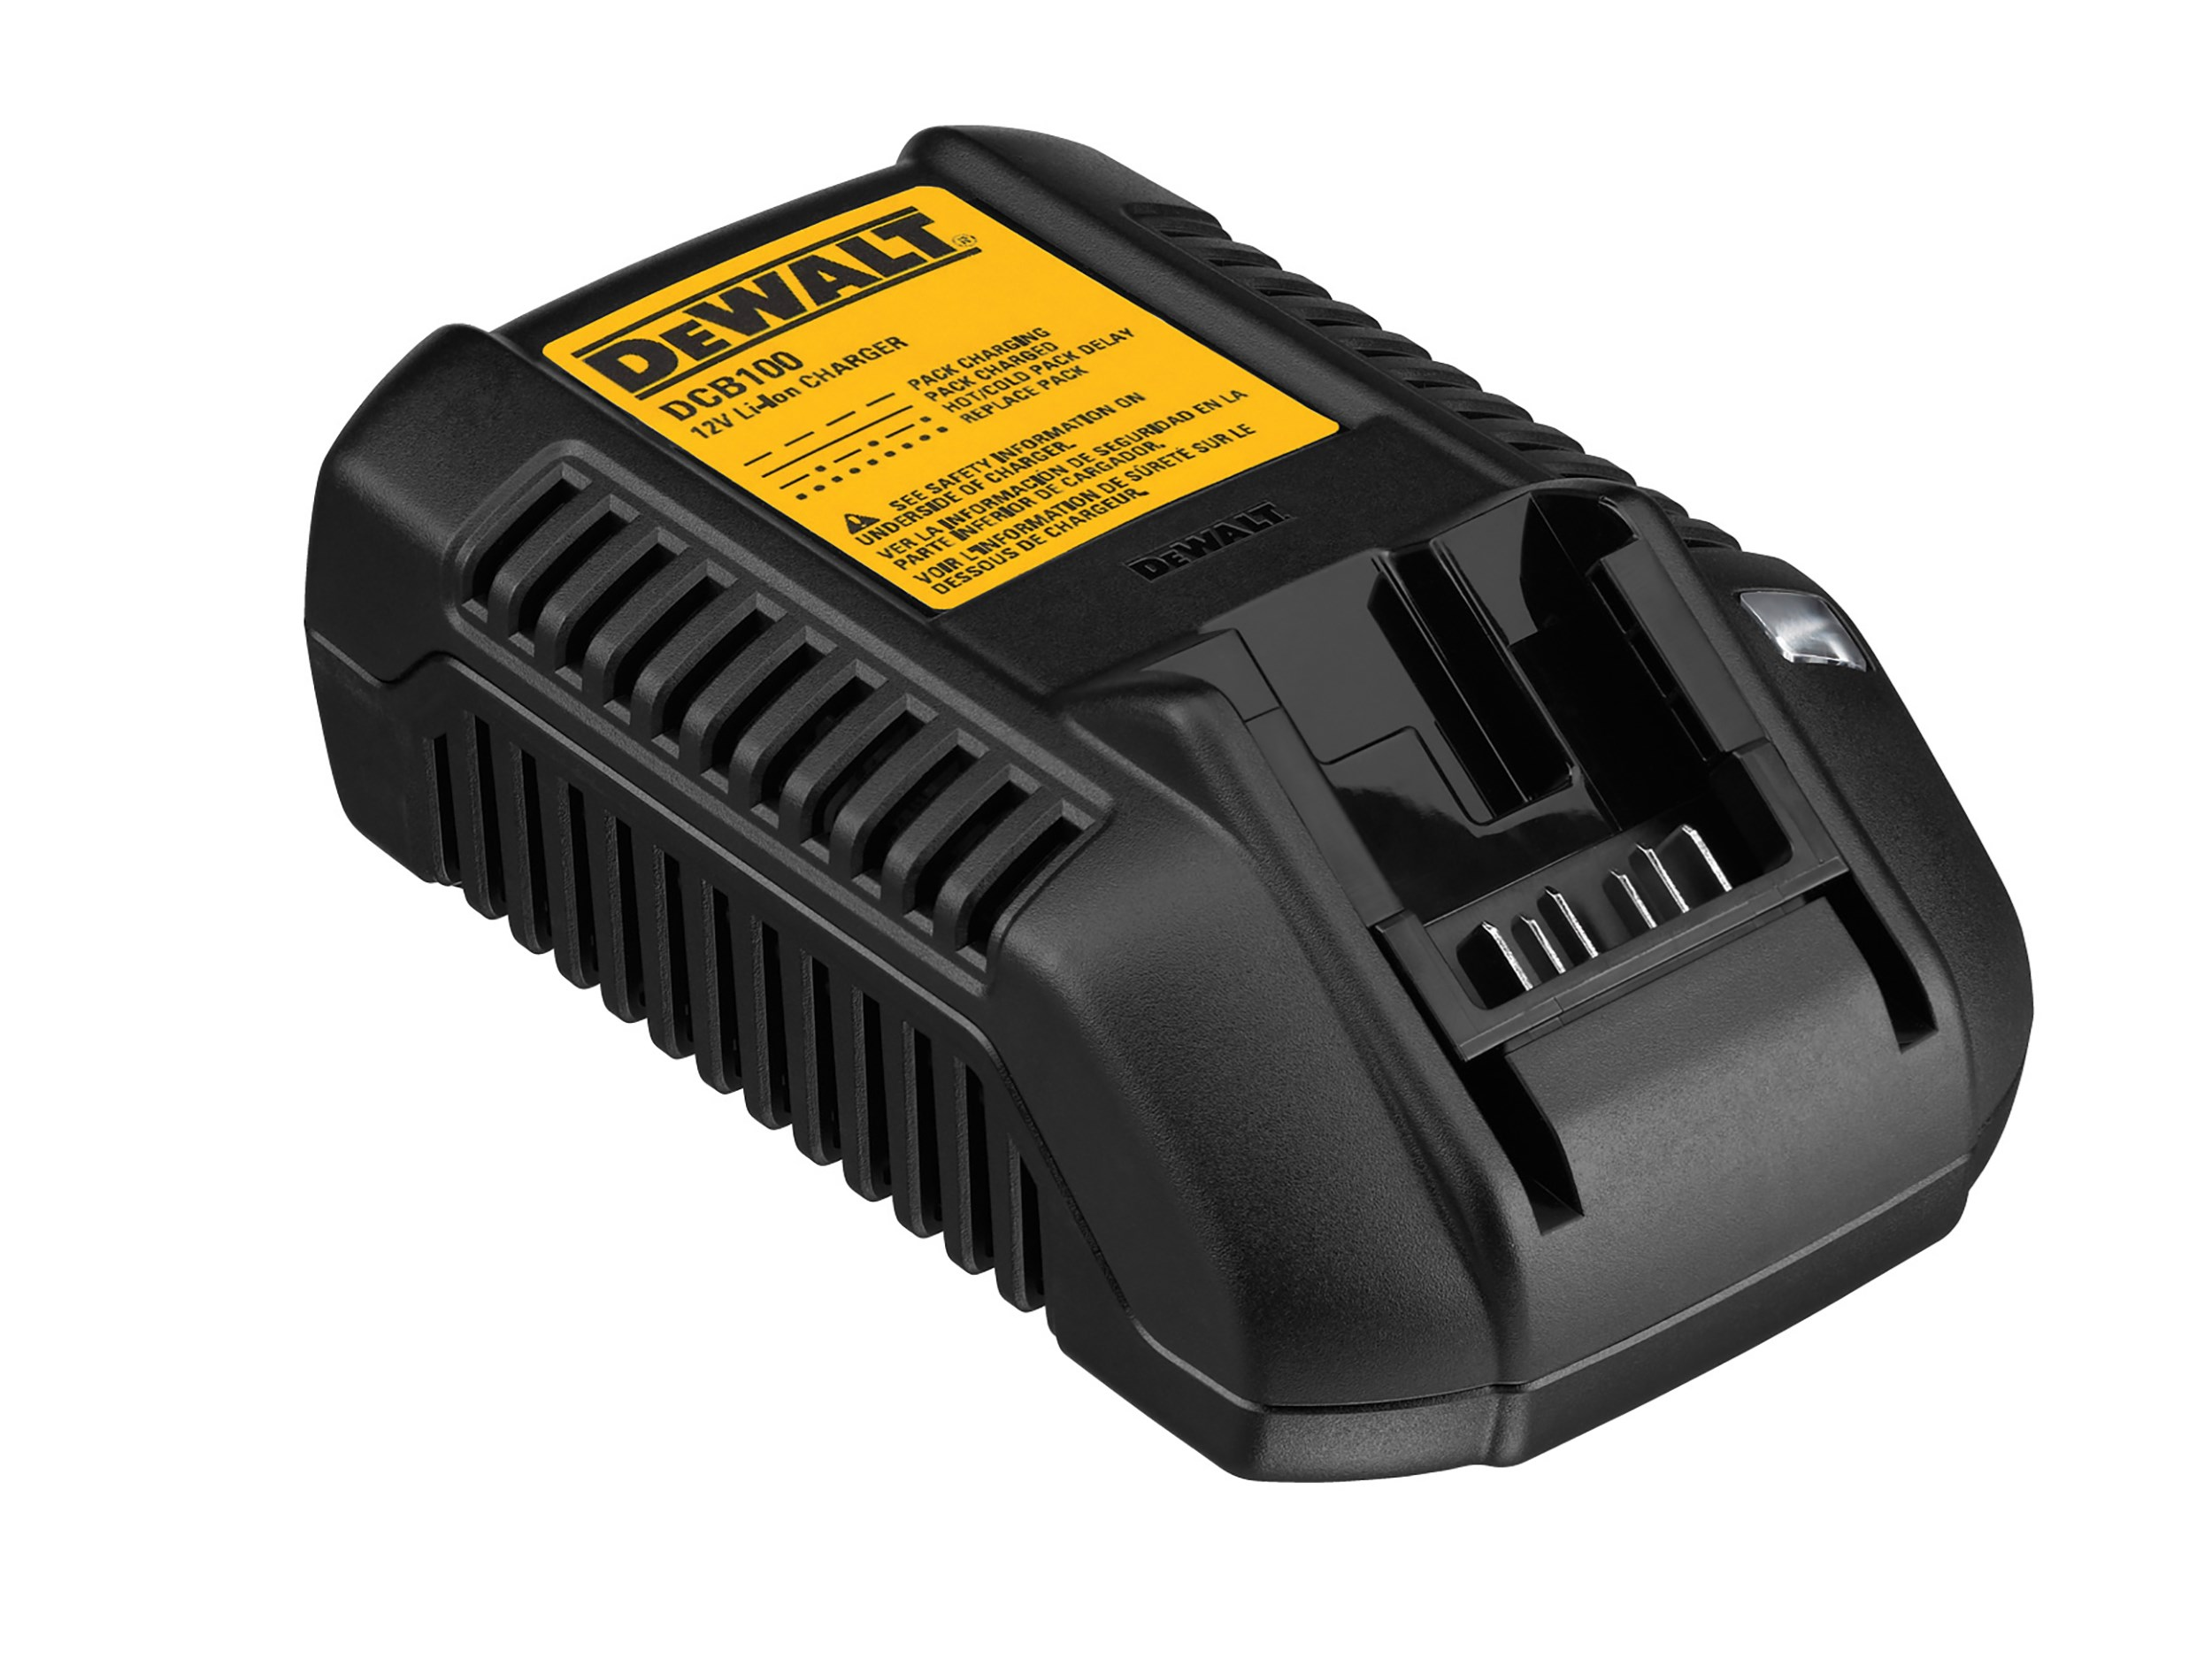 Ryobi Rbc 18l15 One 1 5ah Li Ion Battery Amp Charger 18v